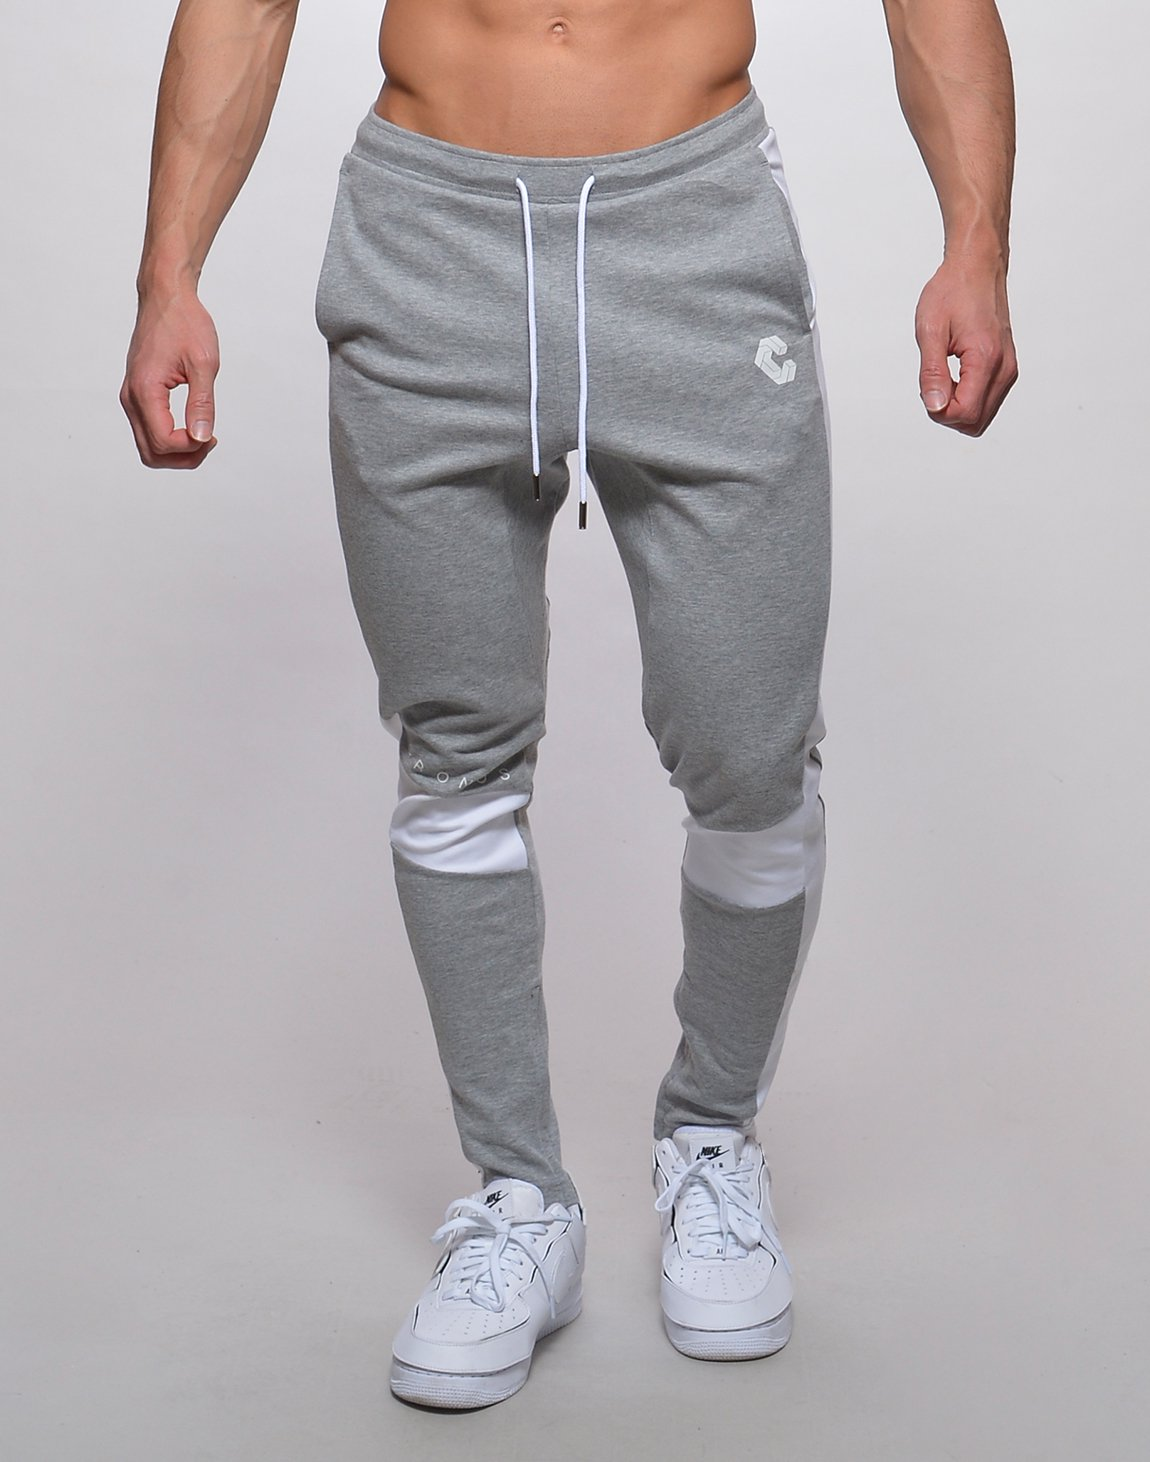 <img class='new_mark_img1' src='https://img.shop-pro.jp/img/new/icons1.gif' style='border:none;display:inline;margin:0px;padding:0px;width:auto;' />CRONOS KNEE LINE PANTS【GRAY】